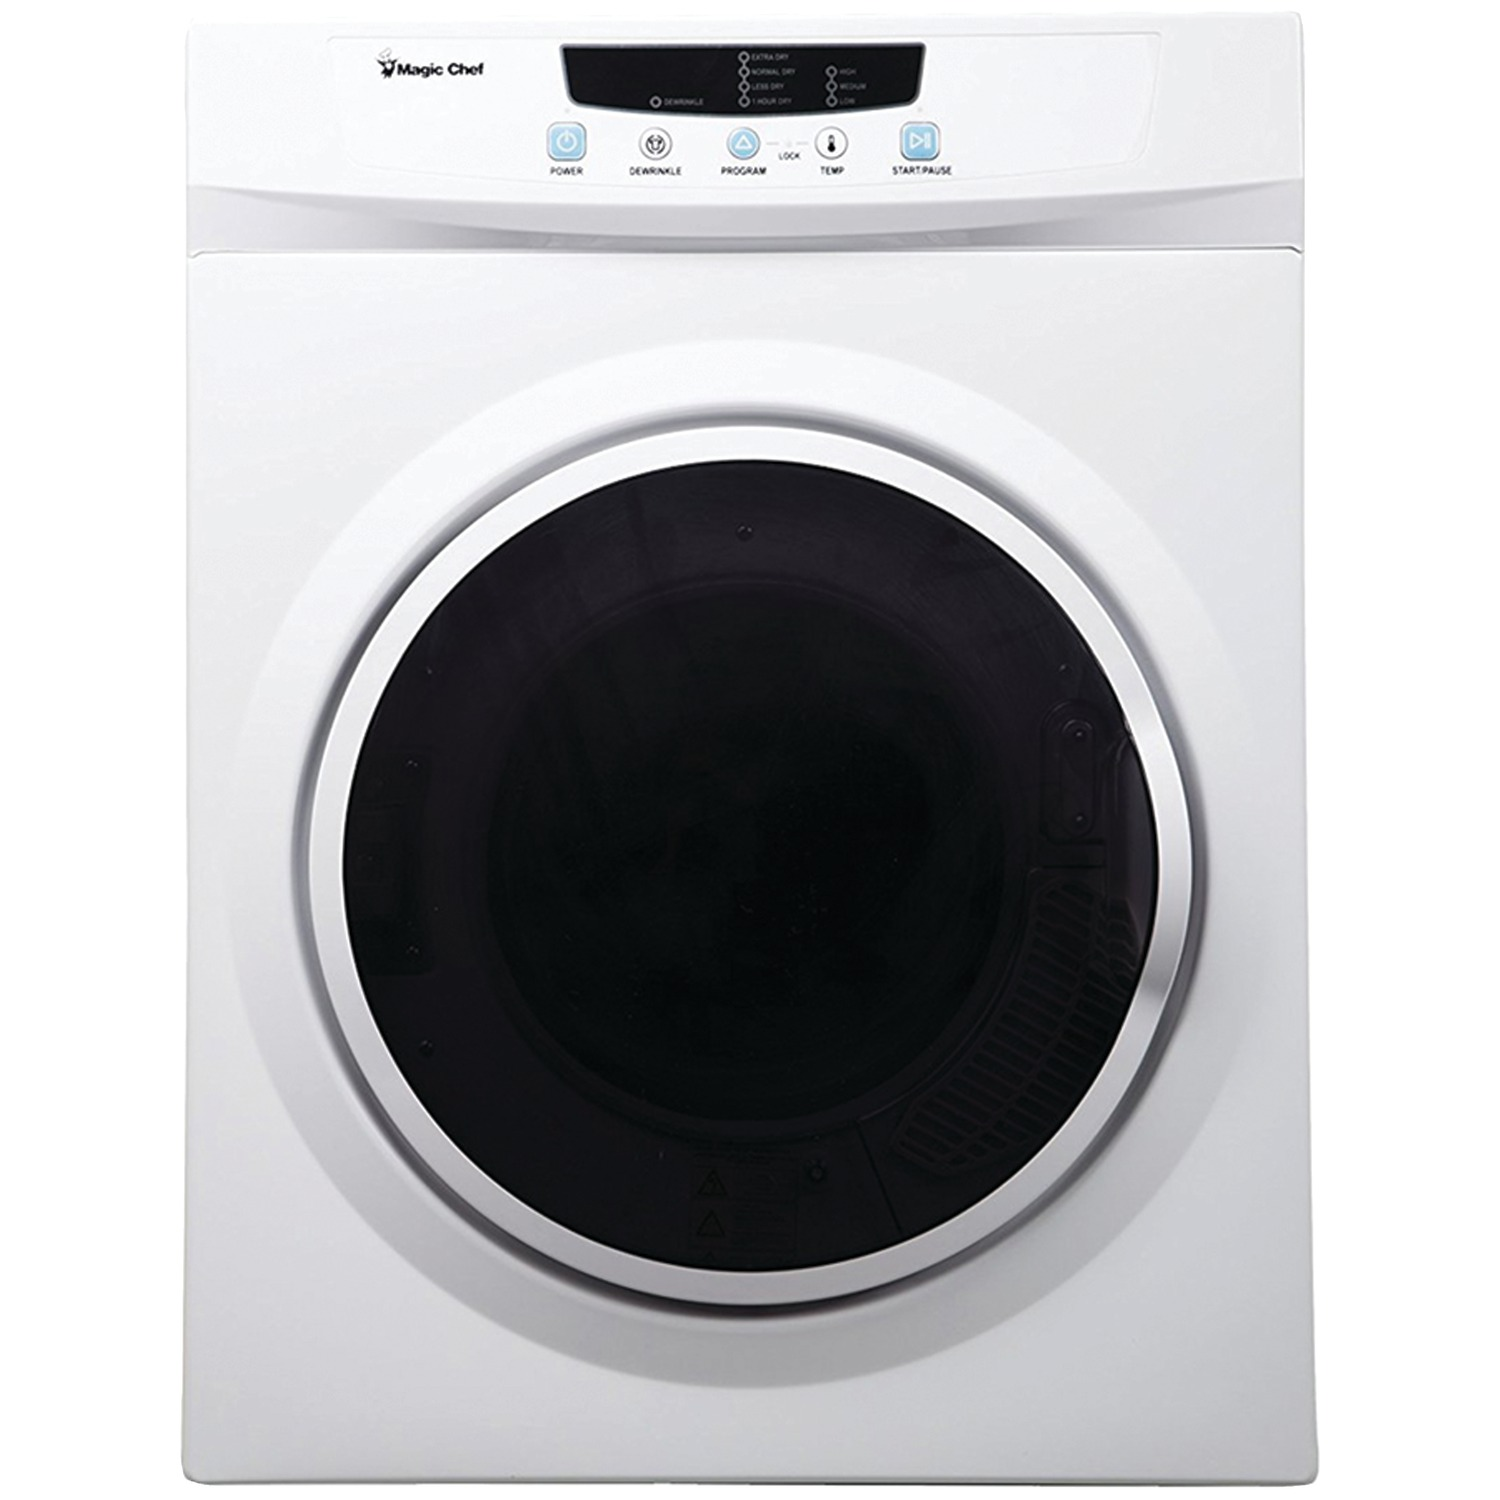 Magic Chef Mcsdry35w 3 5 Cubic Ft Electric Dryer